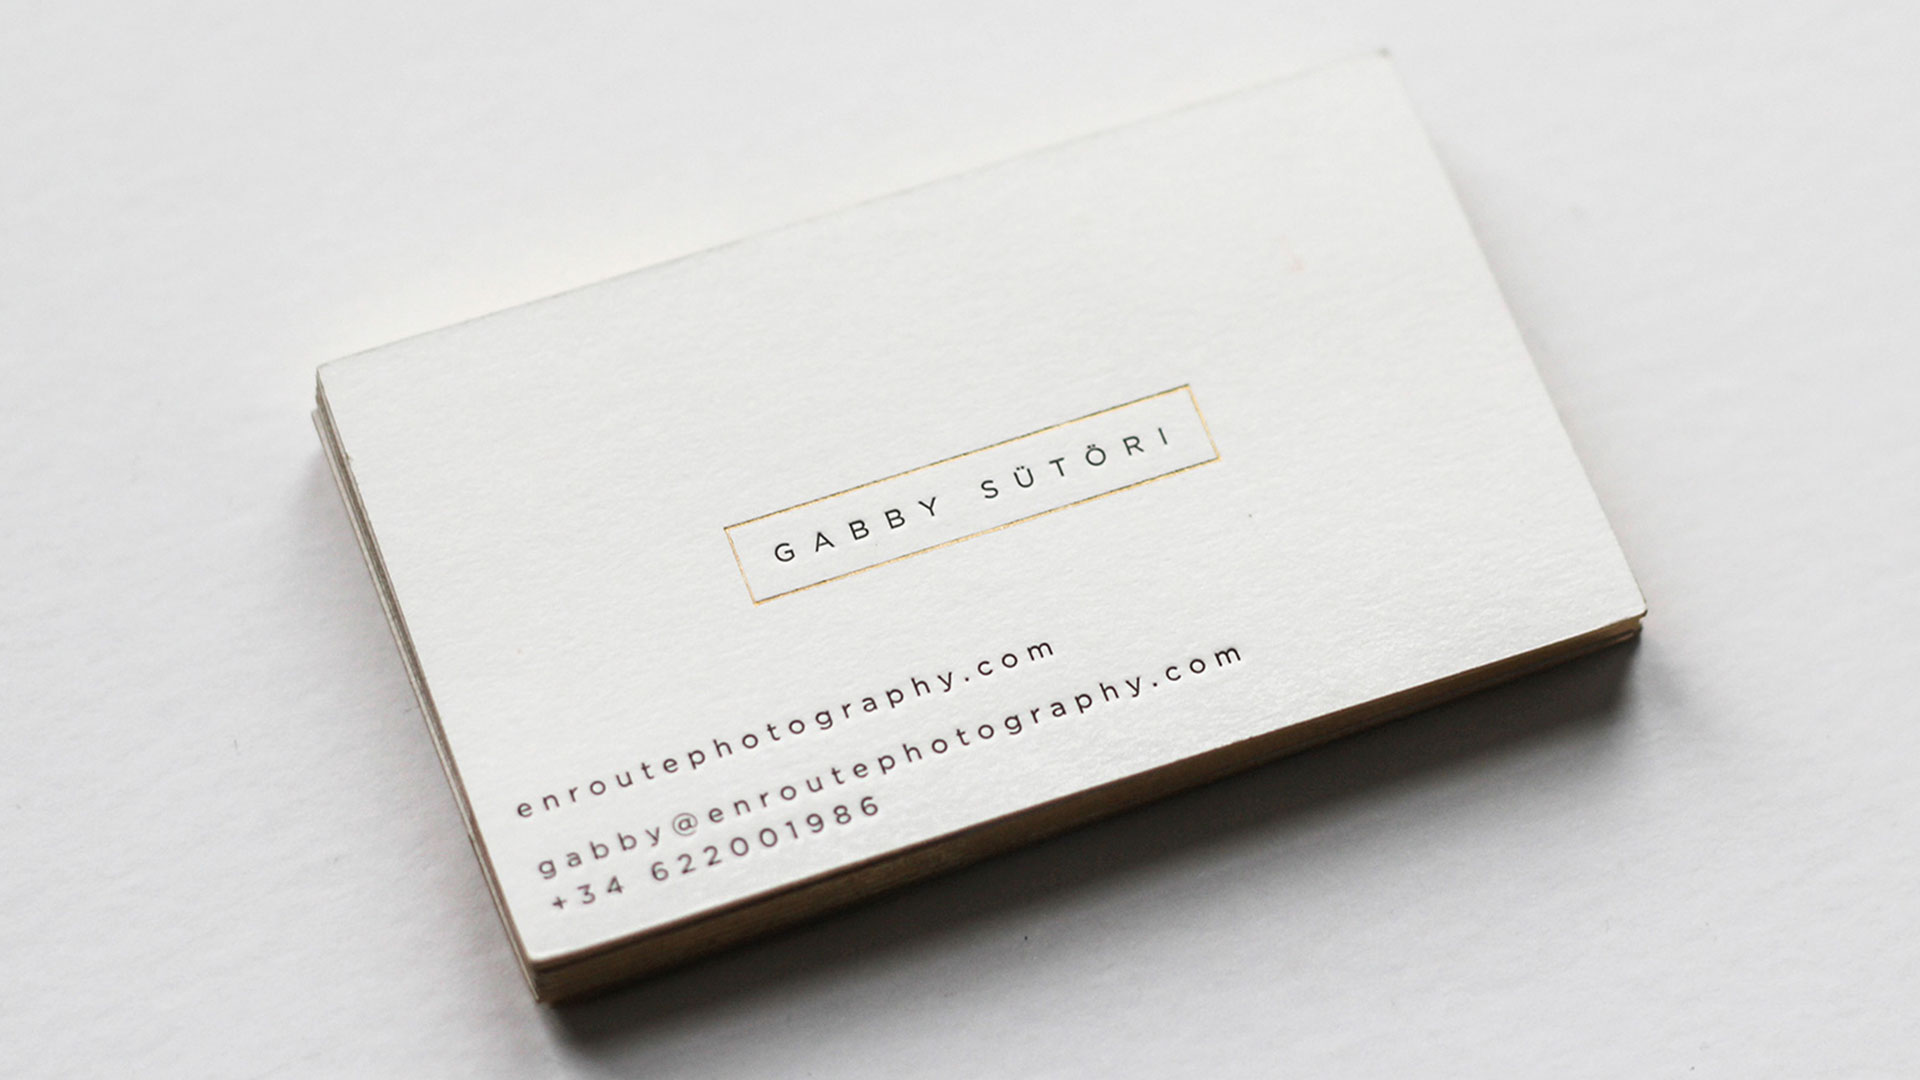 En route photography business cards and identity dimensions 35 x 2 print quantity 500 printing method letterpress number of colors 2 colors black gold foil finishing and binding foil edging magicingreecefo Gallery